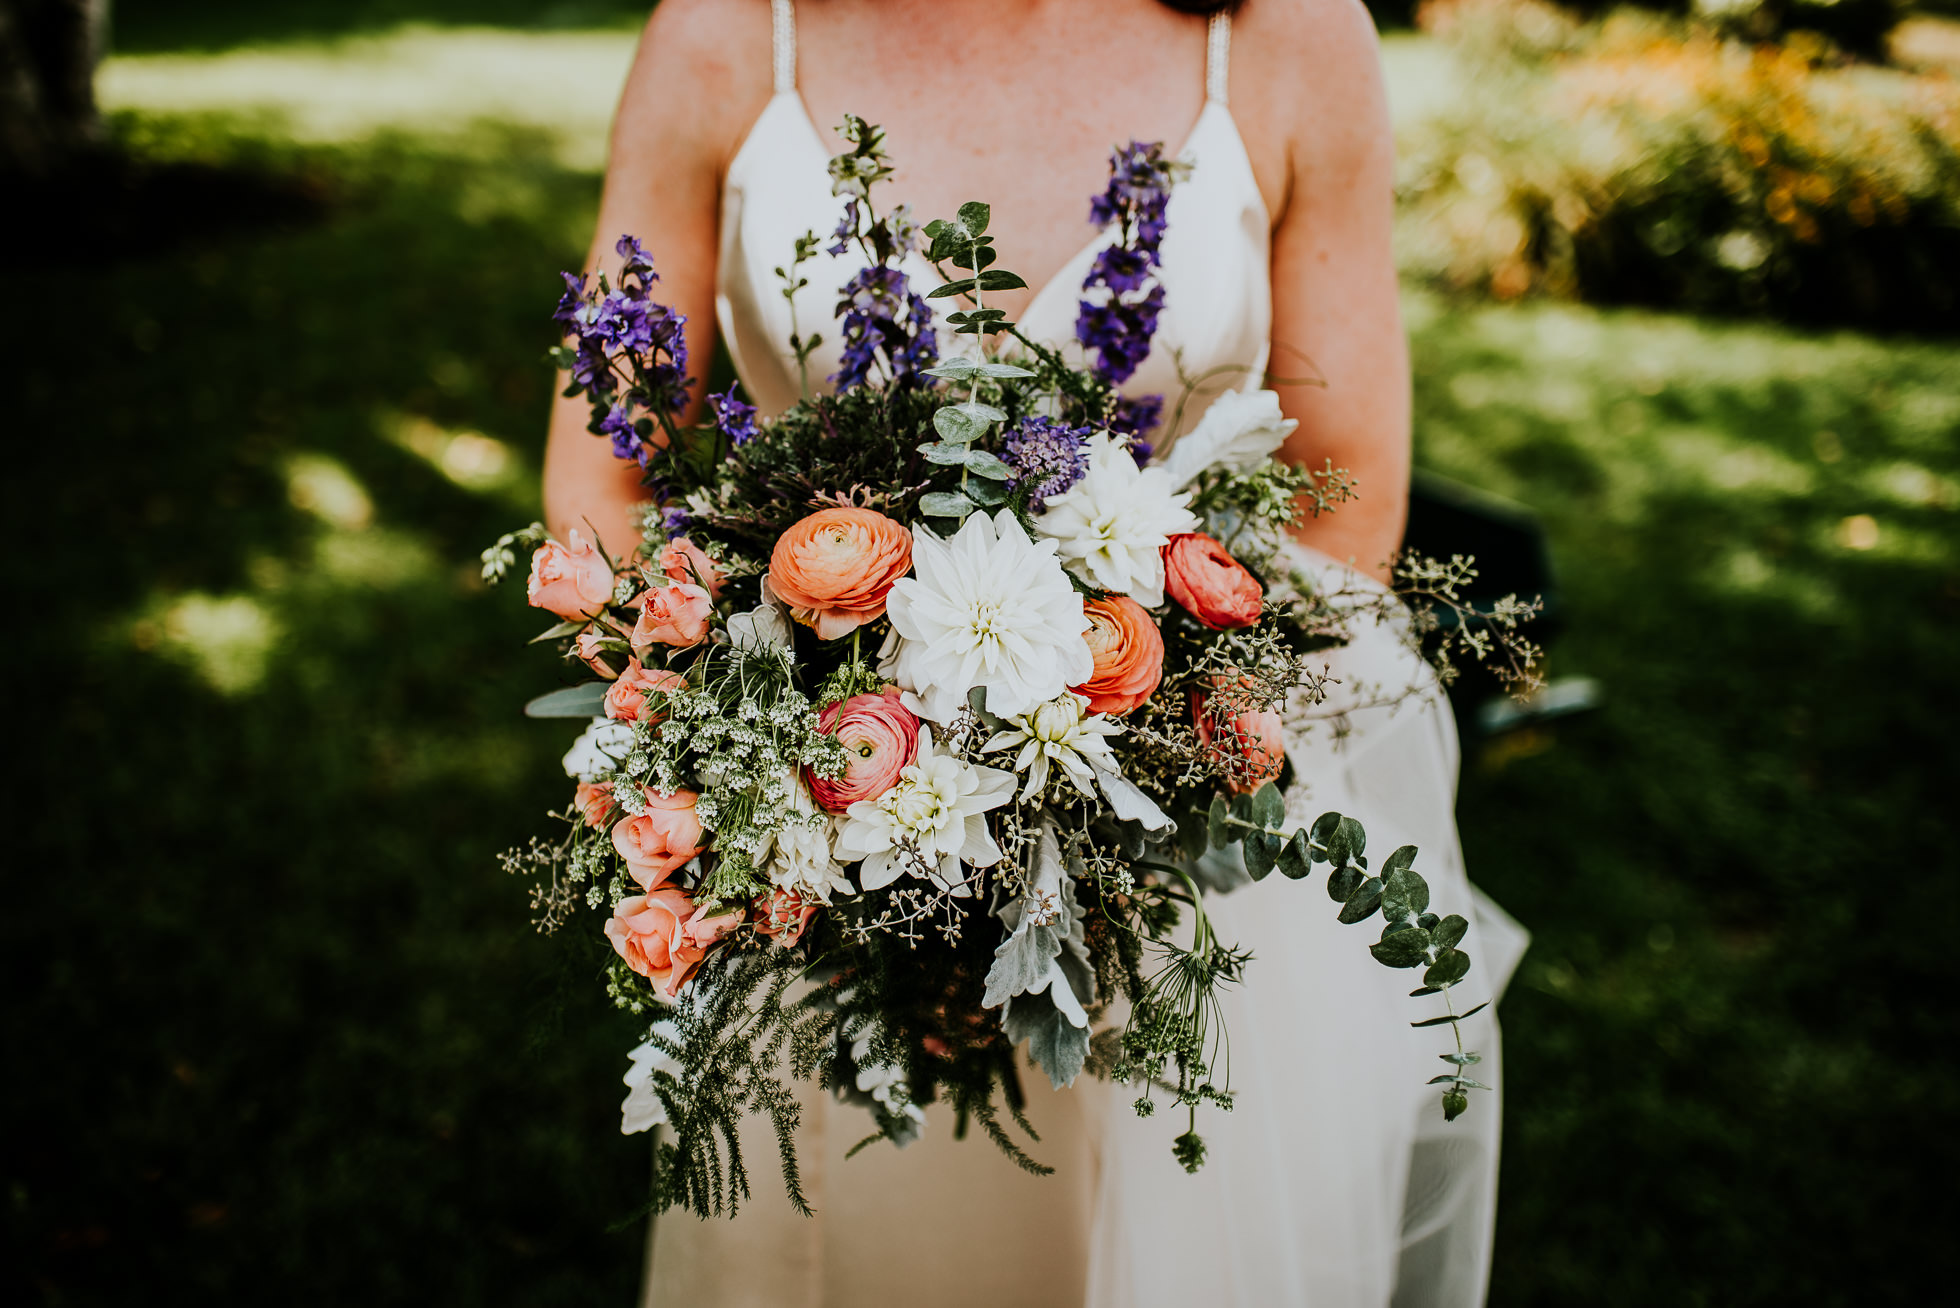 bridal bouquet at olde tater barn wedding in central bridge, ny photographed by traverse the tides